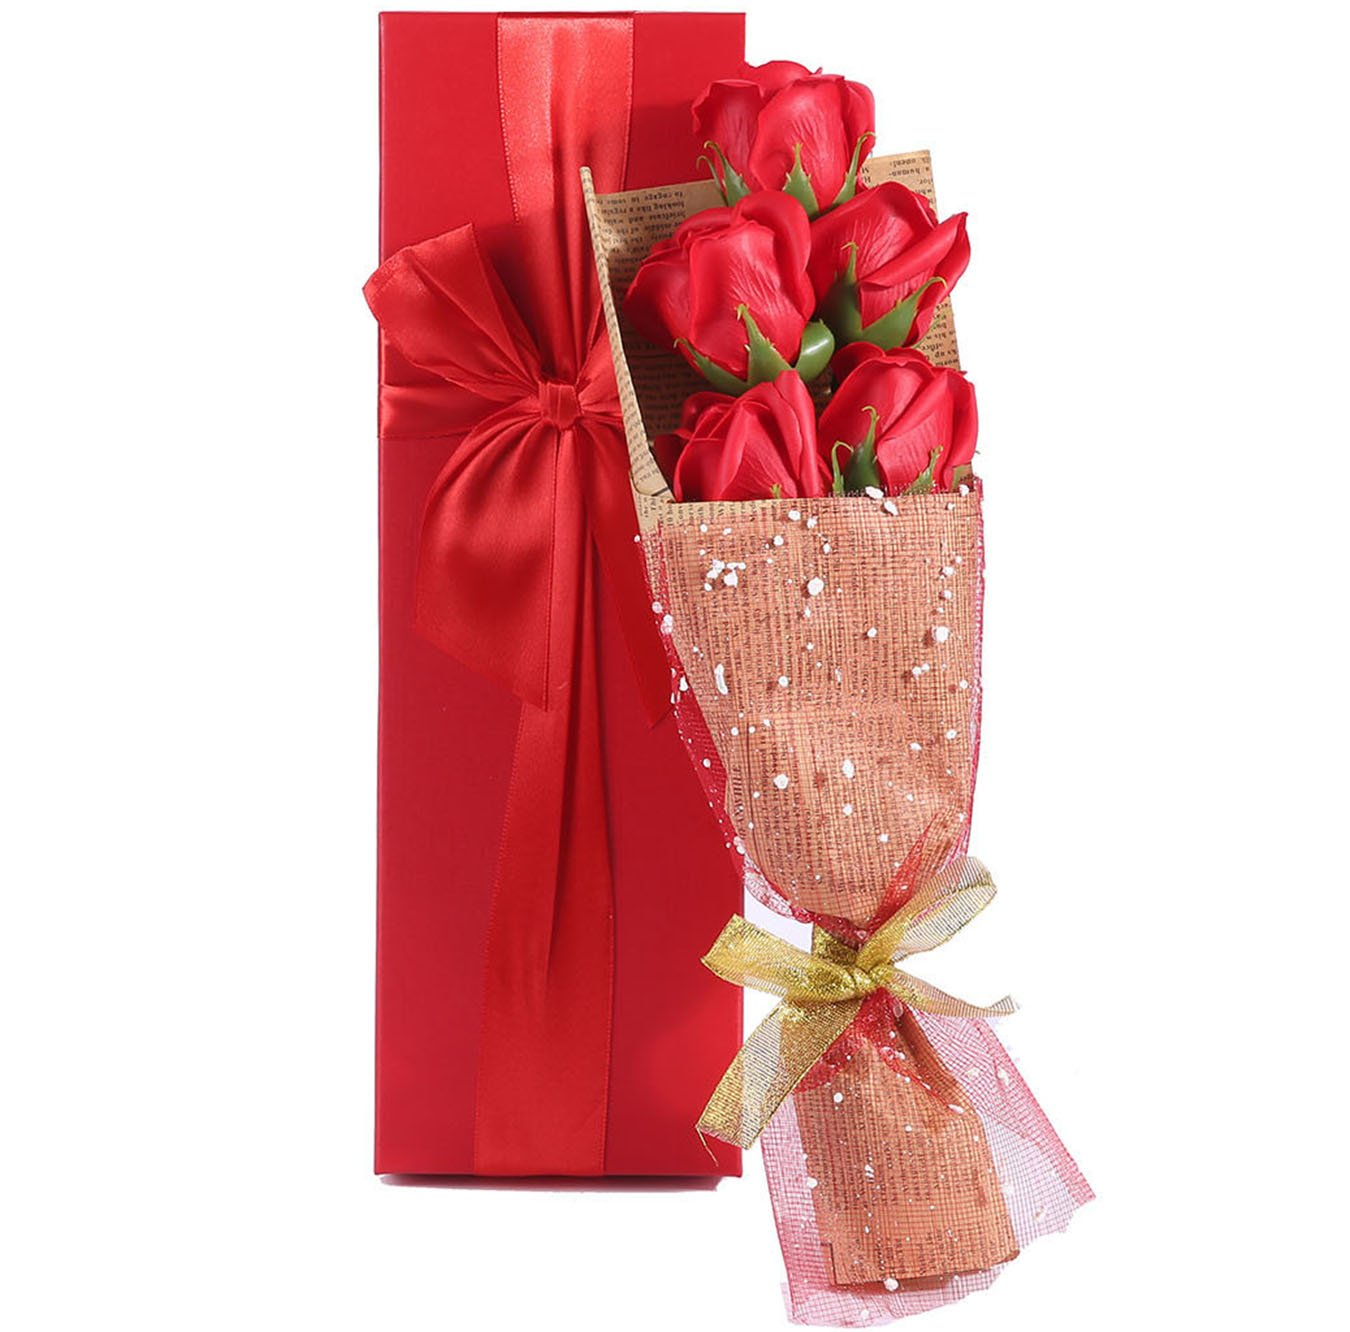 Red roses bouquet gift box anniversary gifts elegantly wrapped of red roses bouquet gift box anniversary gifts elegantly wrapped of 5 scented roses in a charming gift box ideal gift for anniversary birthday mothers and izmirmasajfo